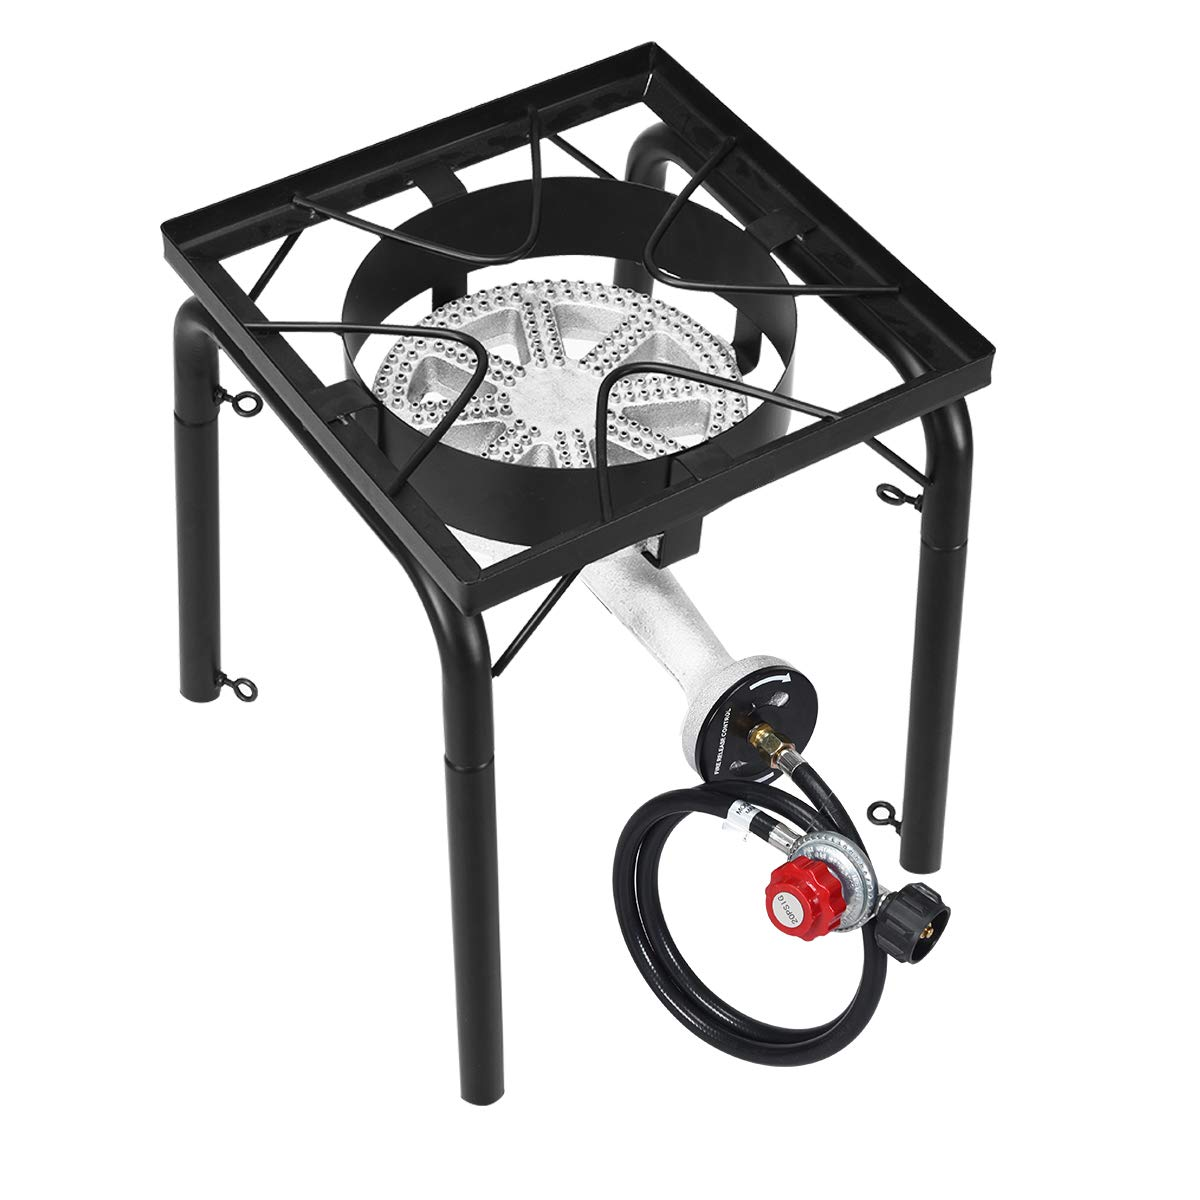 GYMAX Outdoor Stove, Single Burner High Pressure Portable Gas Cooking Stove with Adjustable Regulator & Legs, Perfect for Camping Patio, 200,000-BTU by GYMAX